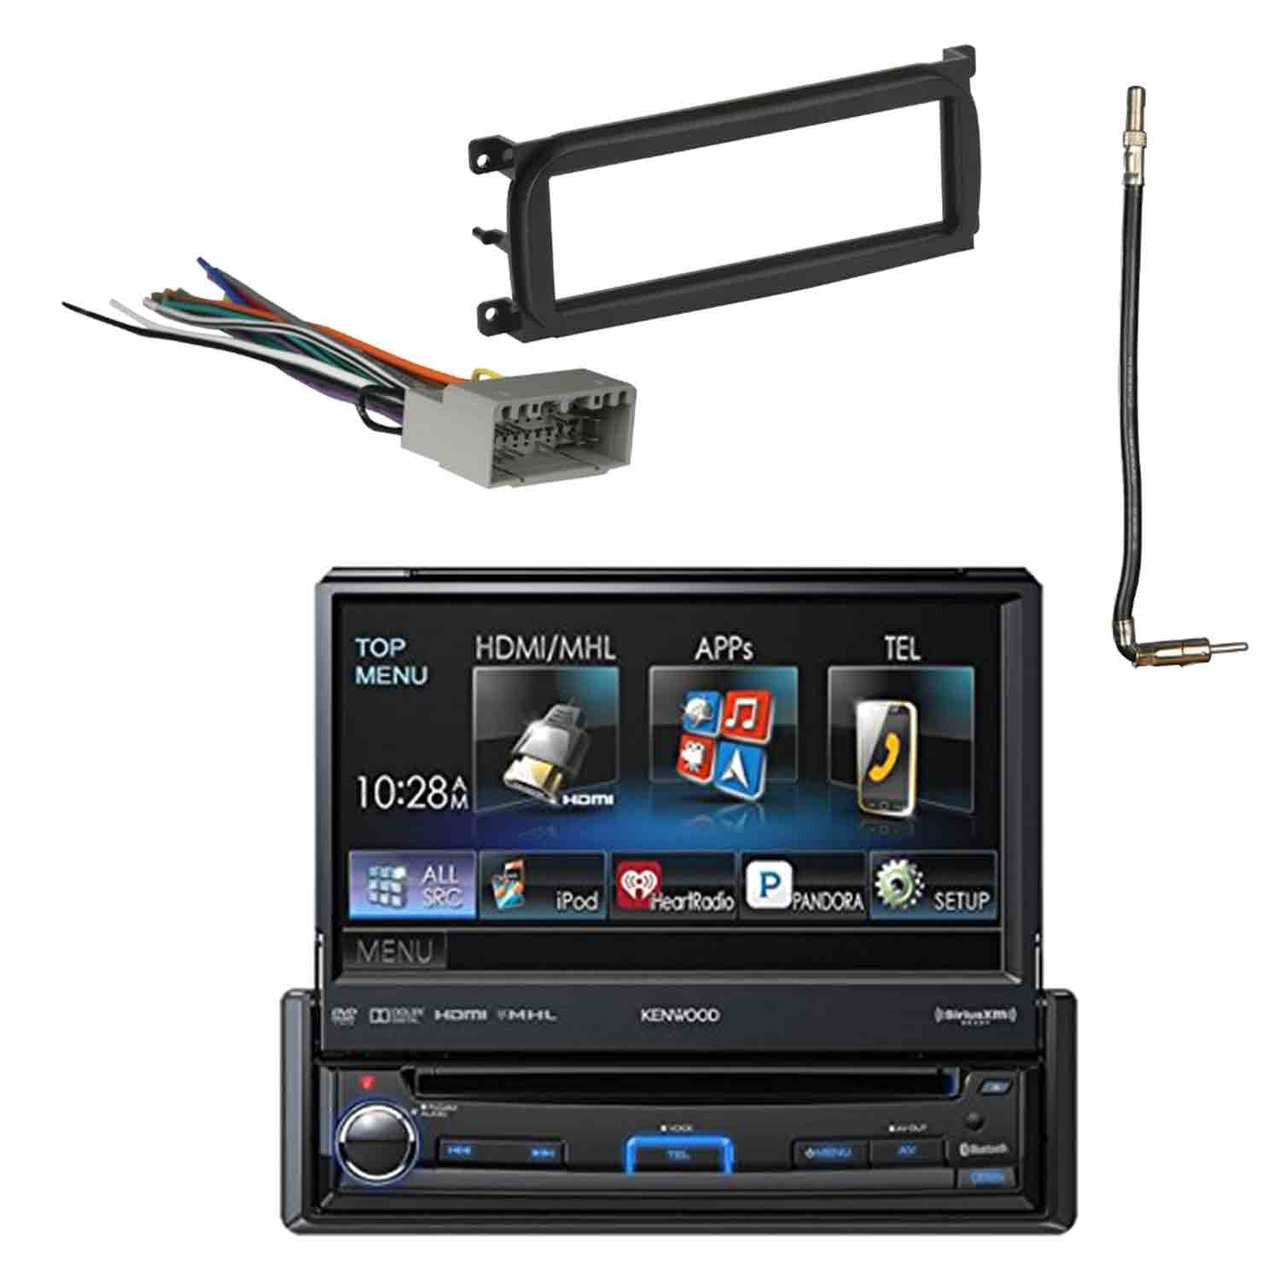 1 Din Dvd Receiver With Dash Kit Antenna Adapter Cable And Radio Wiring Harness Roadentertainmentbundle